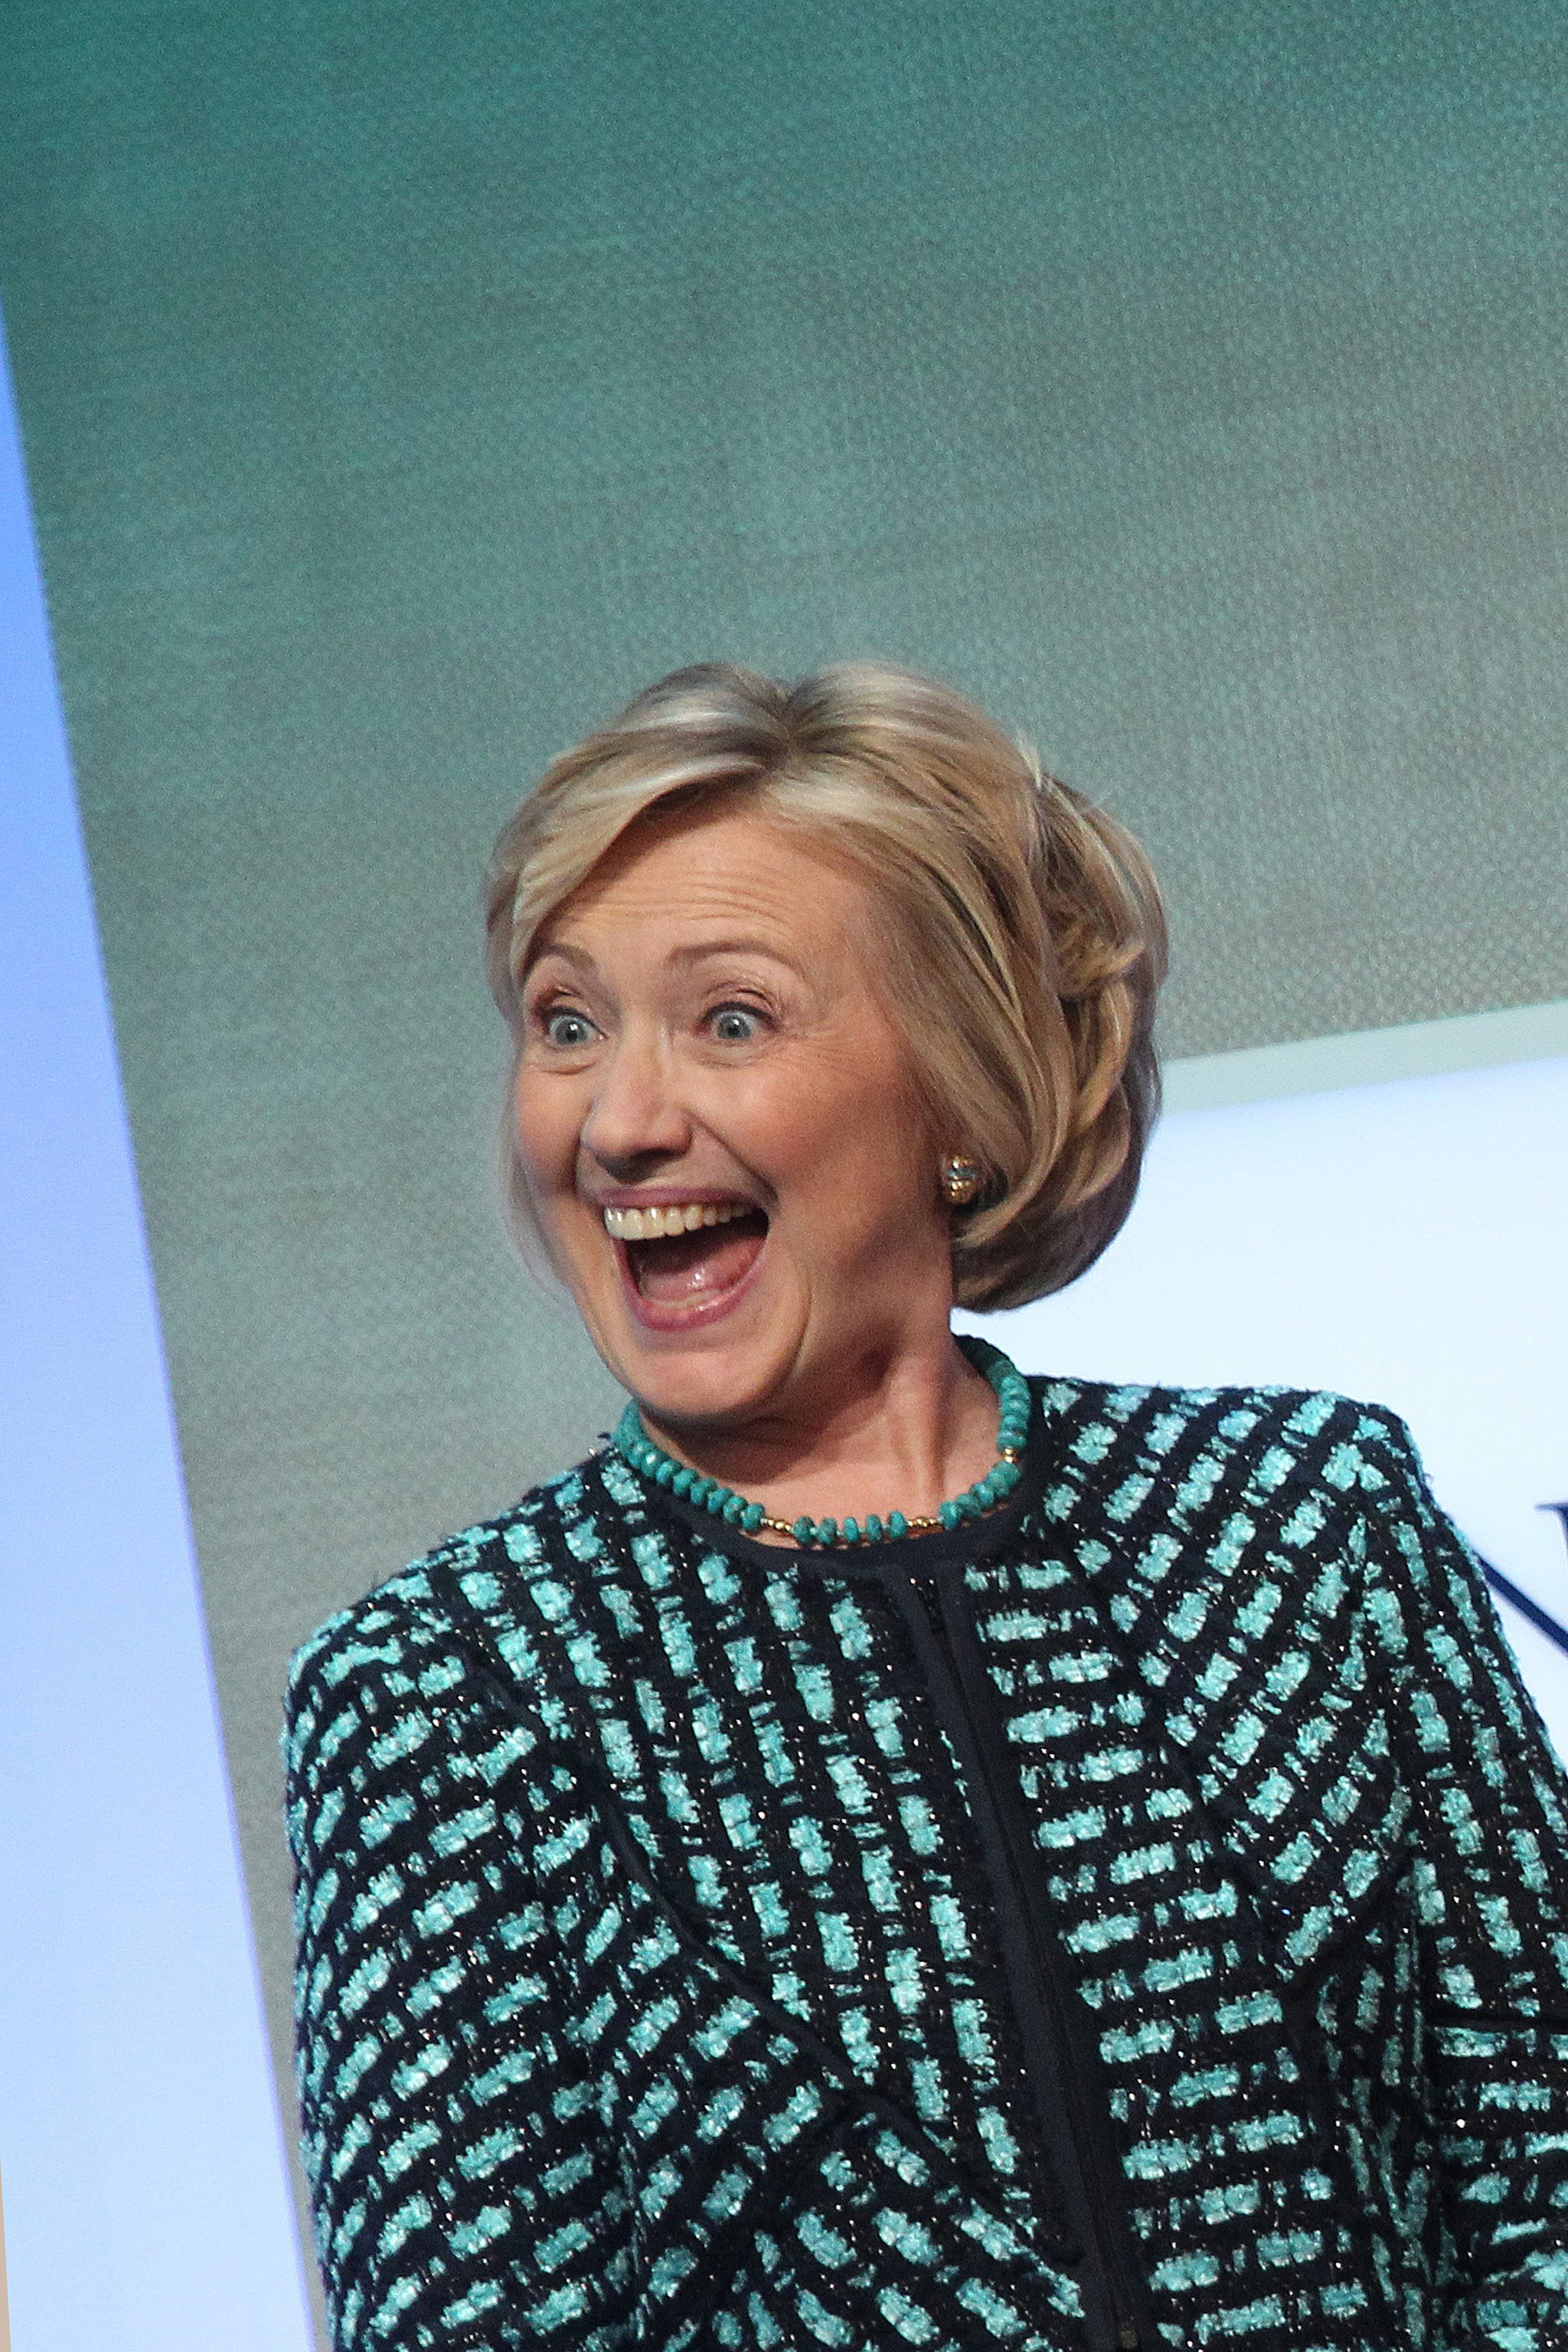 """At the CGI, Hillary Clinton discussed empowering women. She said, """"It's time for a full and clear-eyed look at how far we have come, how far we still have to go and what we plan to do together about the unfinished business of the twenty-first century the full and equal participation of women."""""""